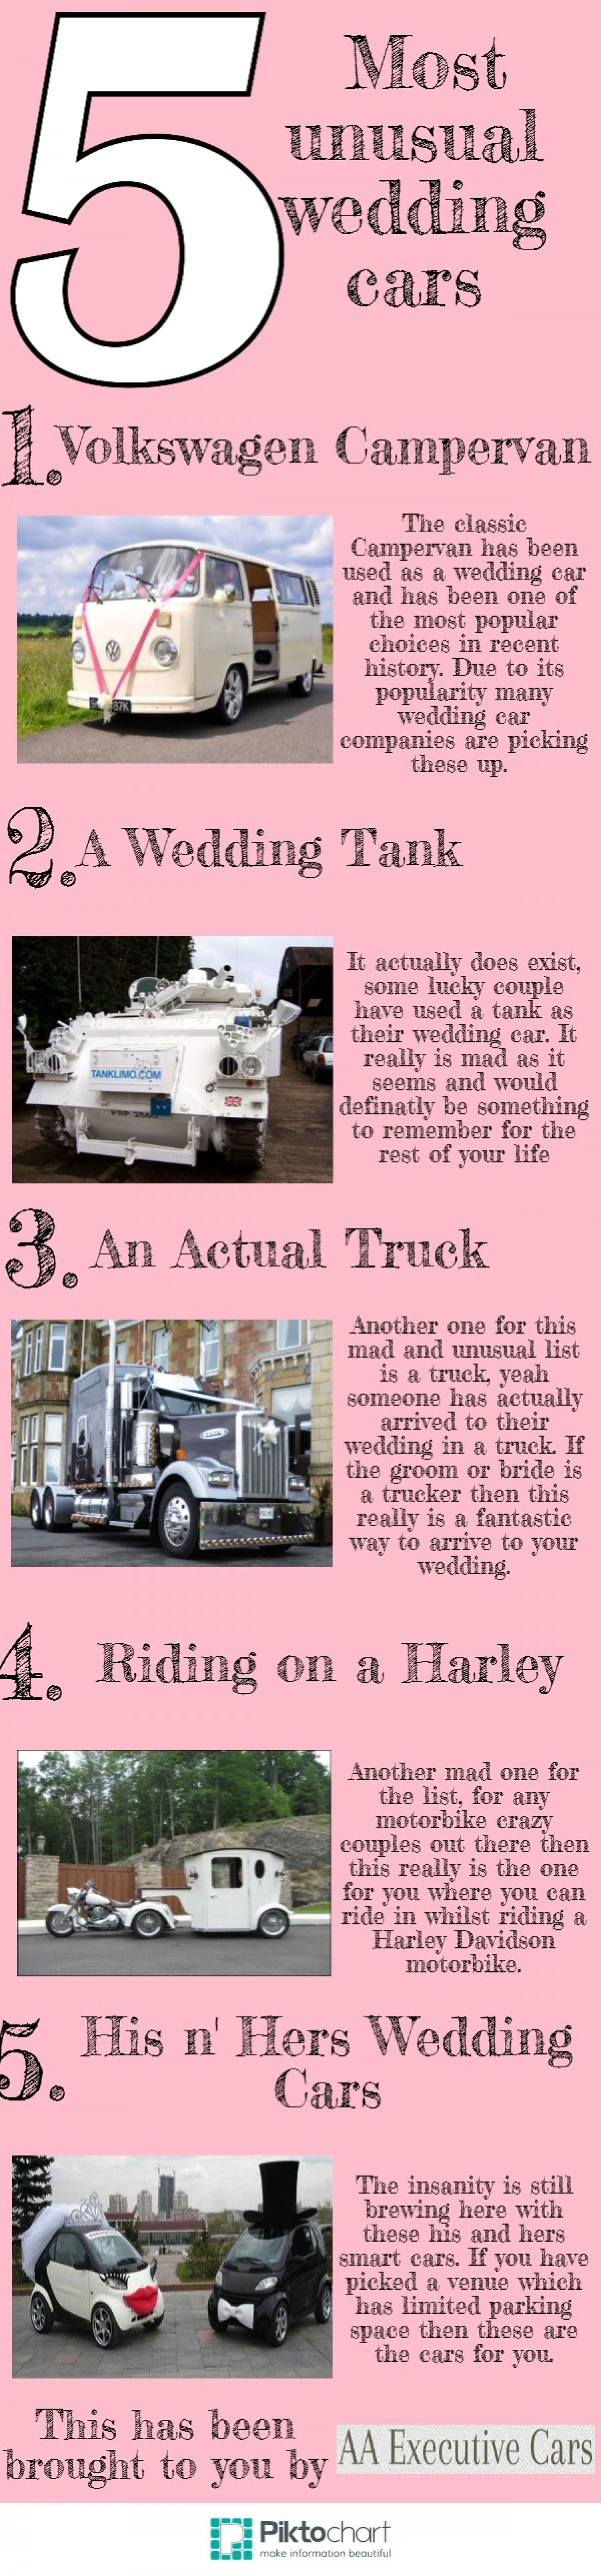 5 most unusual wedding cars Infographic